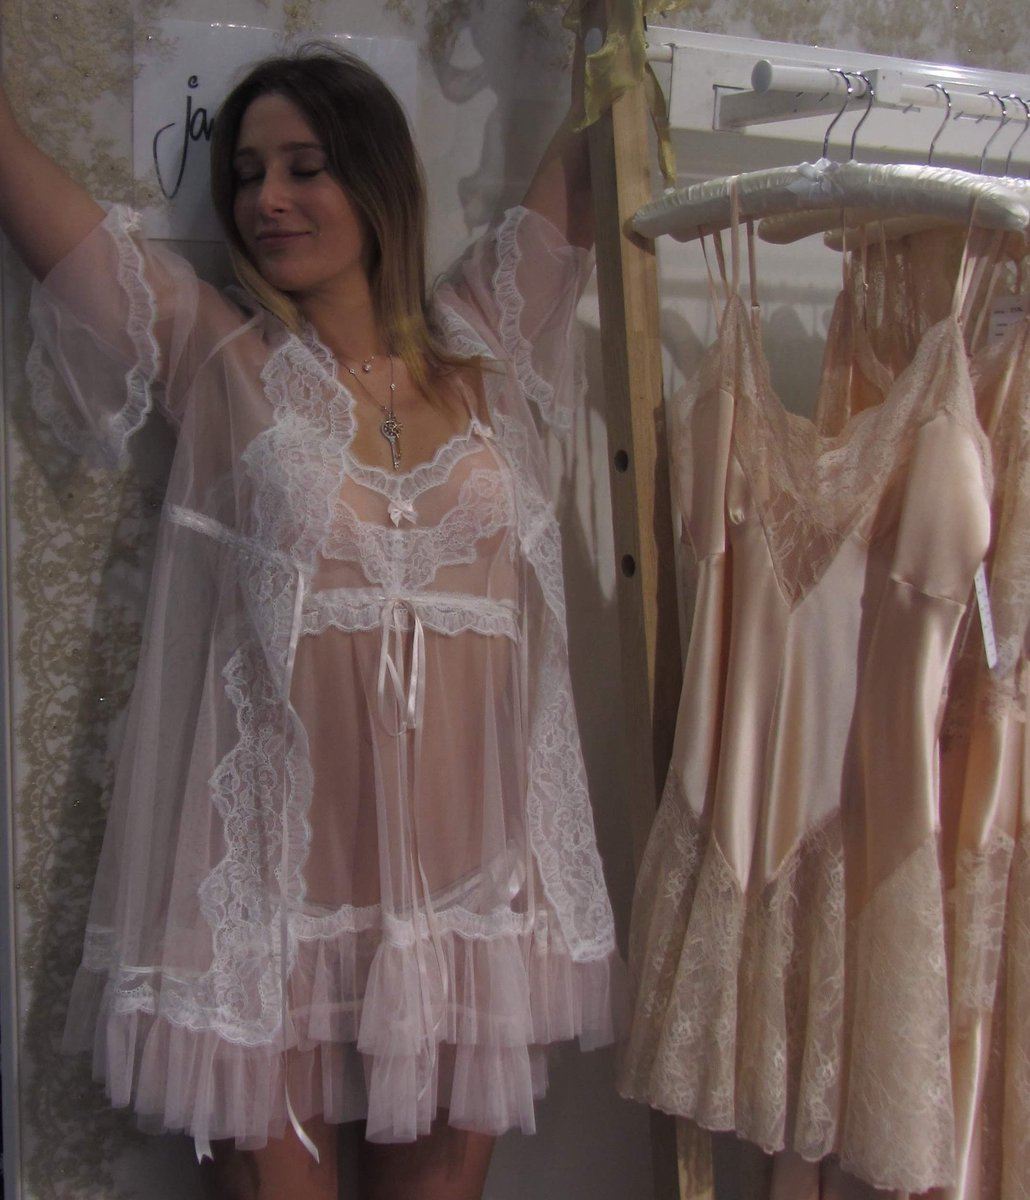 Such a Beautiful Day ! Please Stay Safe ! Bridal Lingerie from Jane Woolrich Couture http://www.jane-woolrich.co.uk #staysafe #bridallingerie #sexylingerie #sensuallingerie #designerlingerie  @estelle_adony @TrousseauLtd @LaPetiteNYC @UpliftInAp @LingerieBriefs @Vanessahulotpic.twitter.com/7j8634enuH